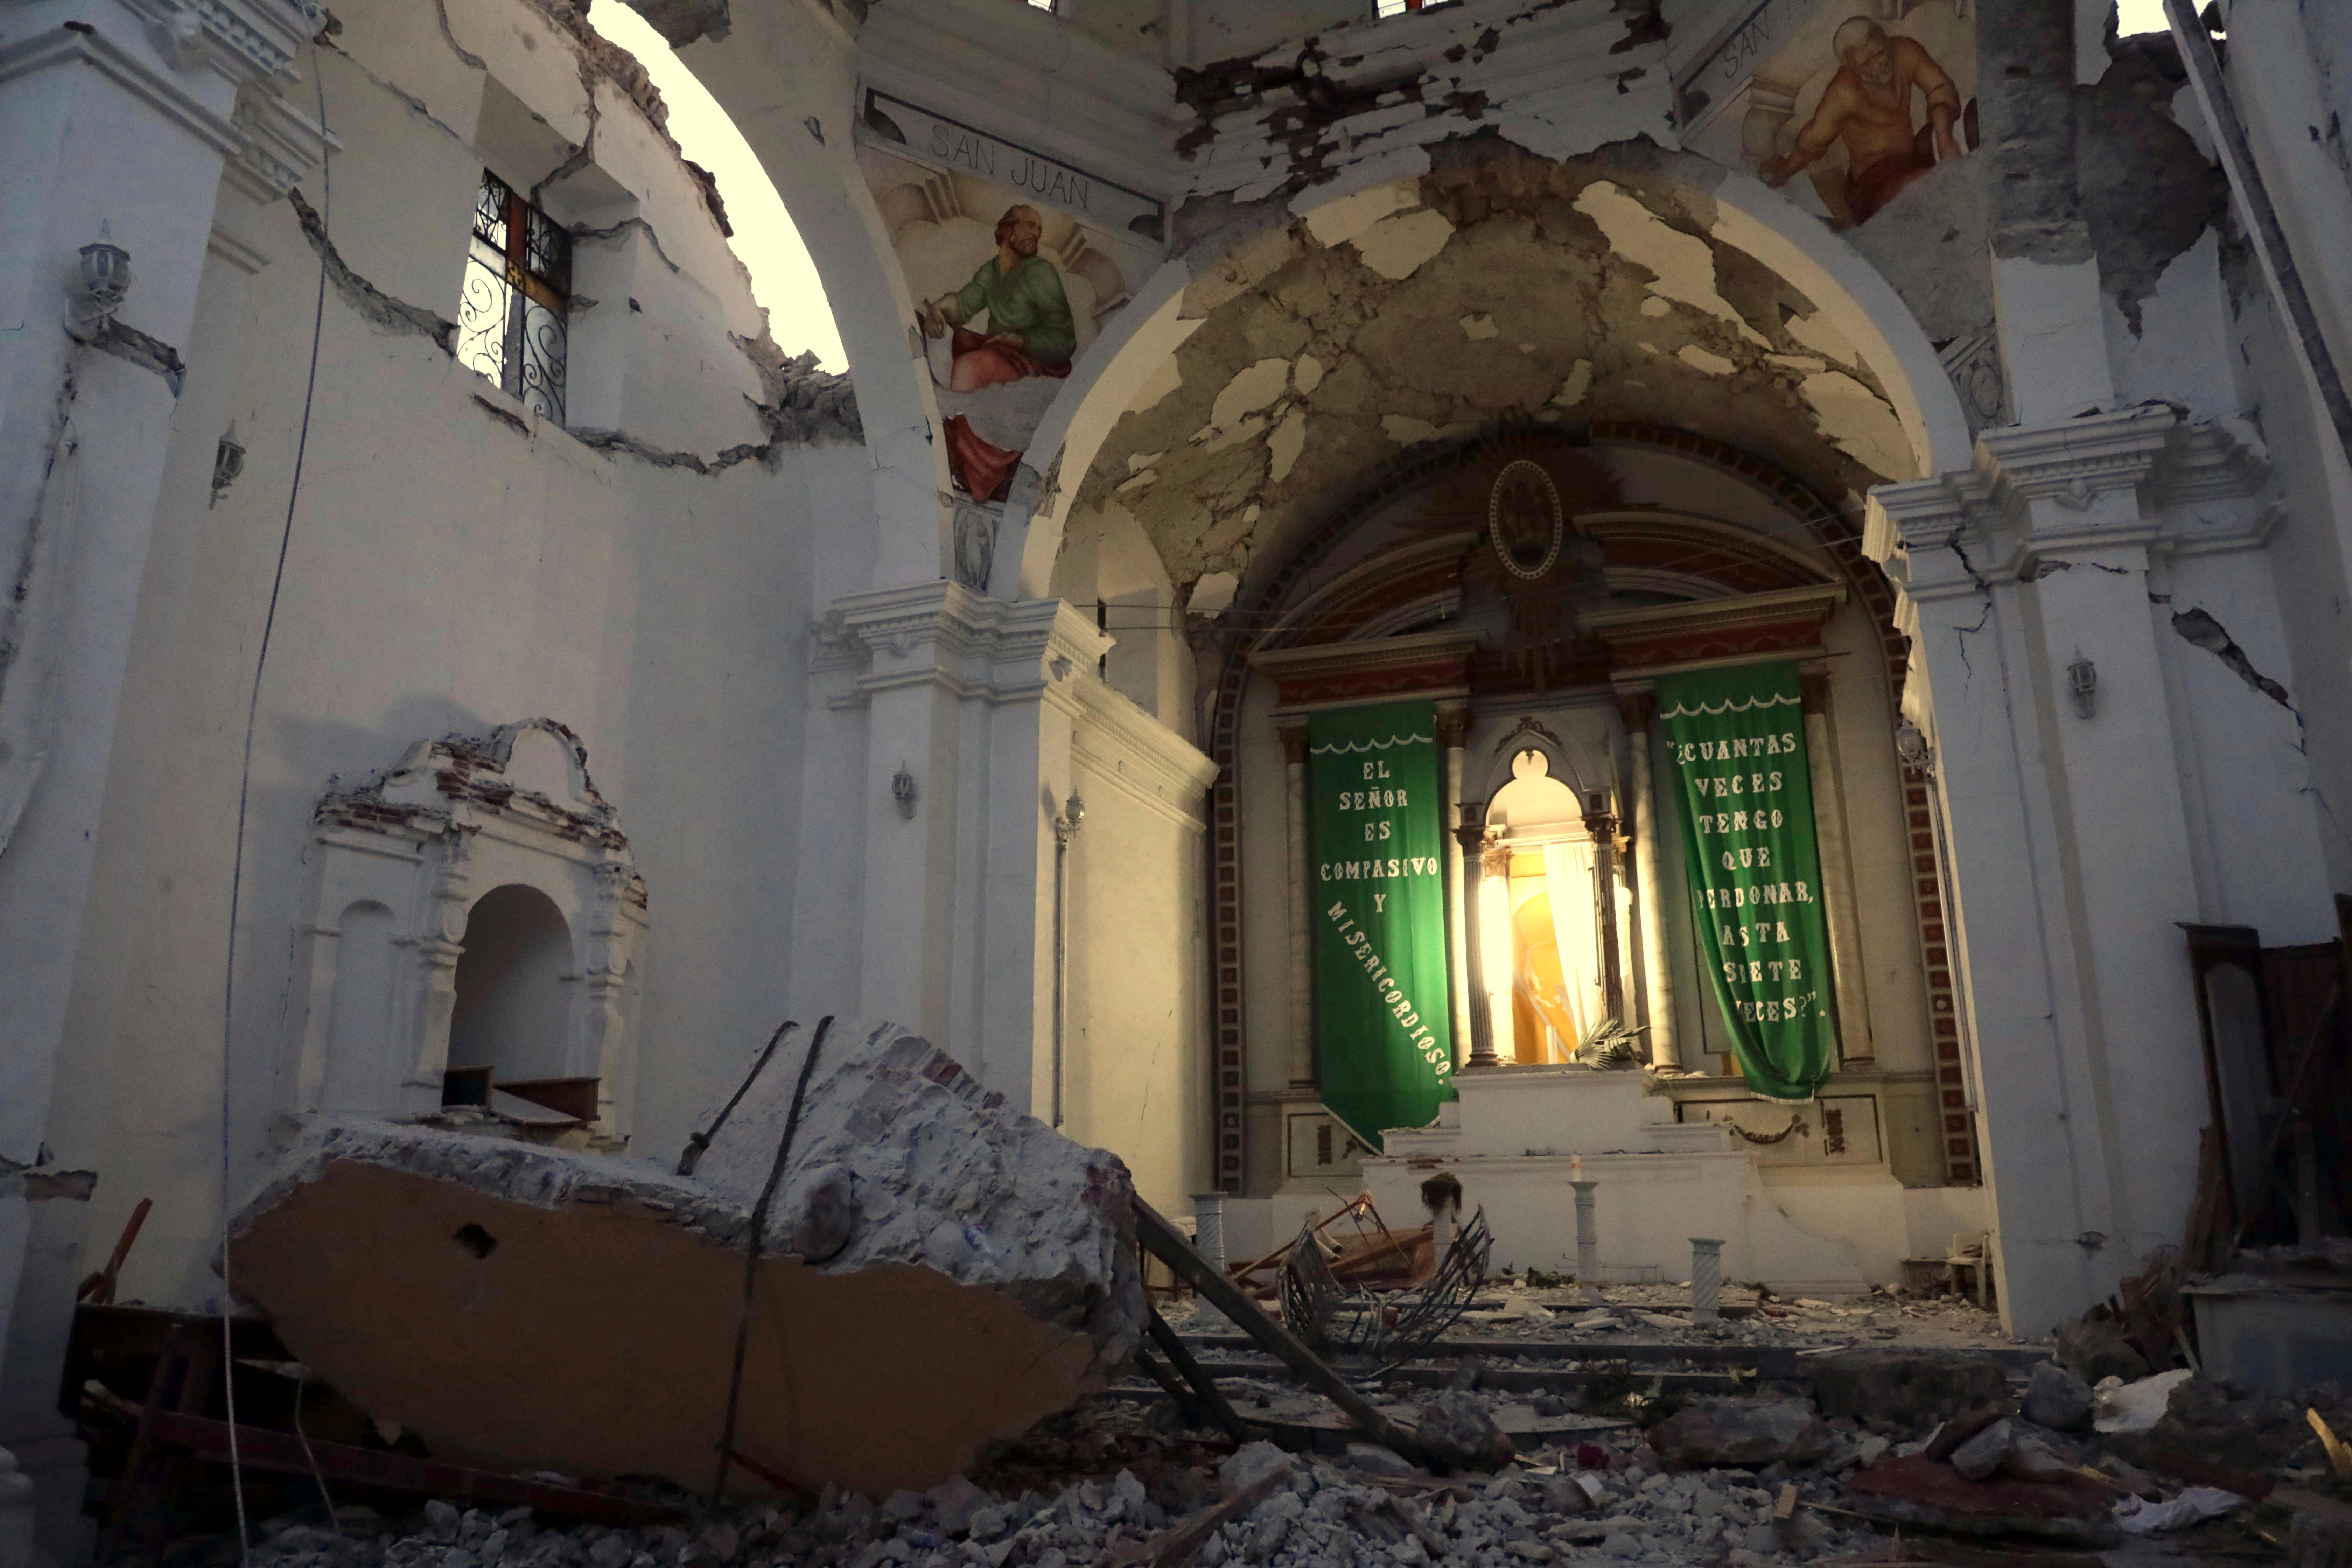 The sky is exposed from inside Santiago Apostol church which collapsed during the 7.1 earthquake in the town of Atzala in Puebla state, Mexico, Wednesday, Sept. 20, 2017. According to family members of the 11 people who died inside the church during Tuesday's quake, the roof collapsed during a Mass held to baptize a two-year-old girl, and the only people who survived were the baby's father, the priest and the priest's assistant. (AP Photo/Pablo Spencer)